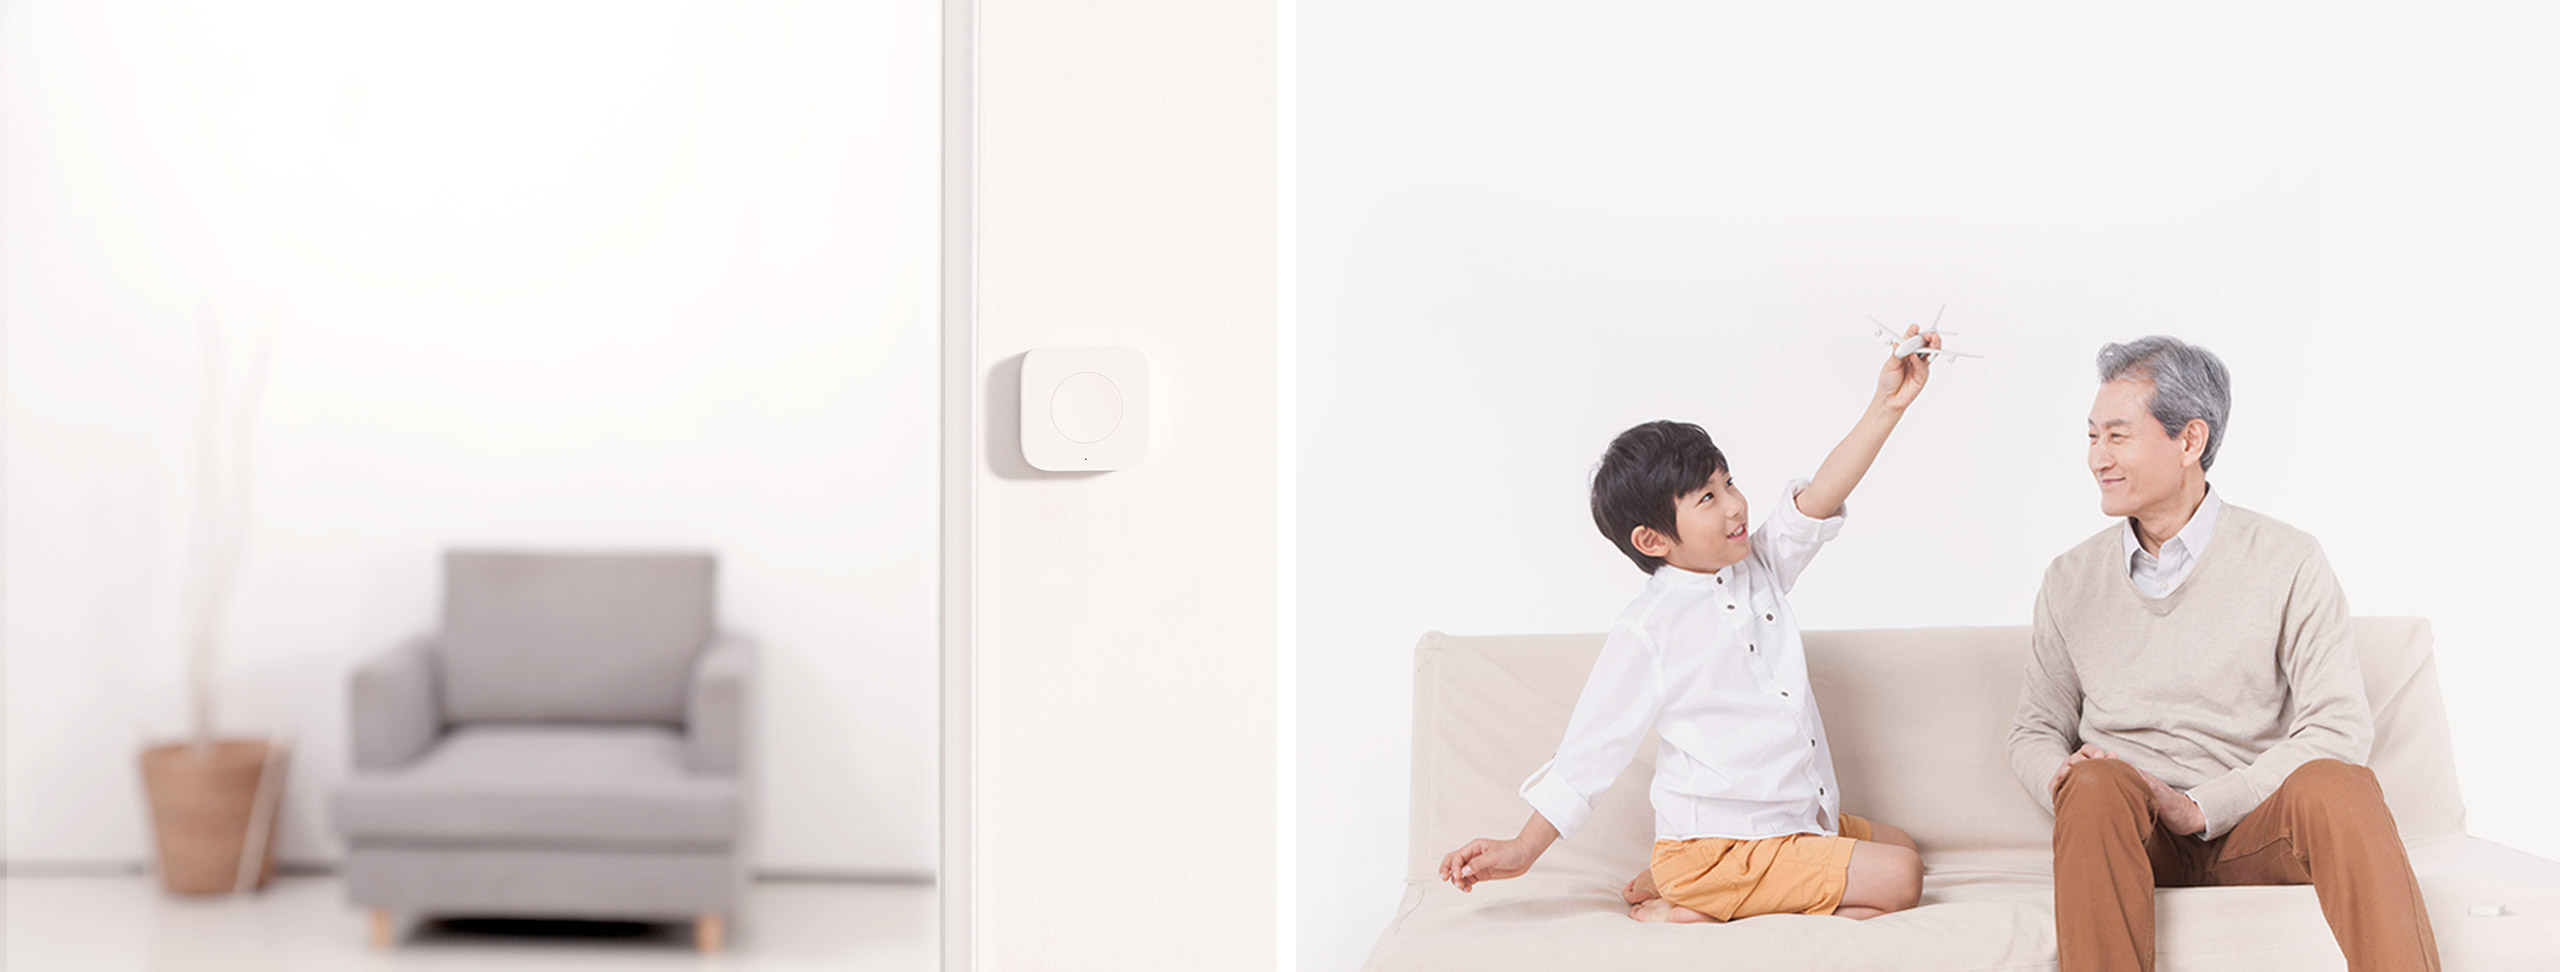 Aqara wireless remote switch as a doorbell or emergency button